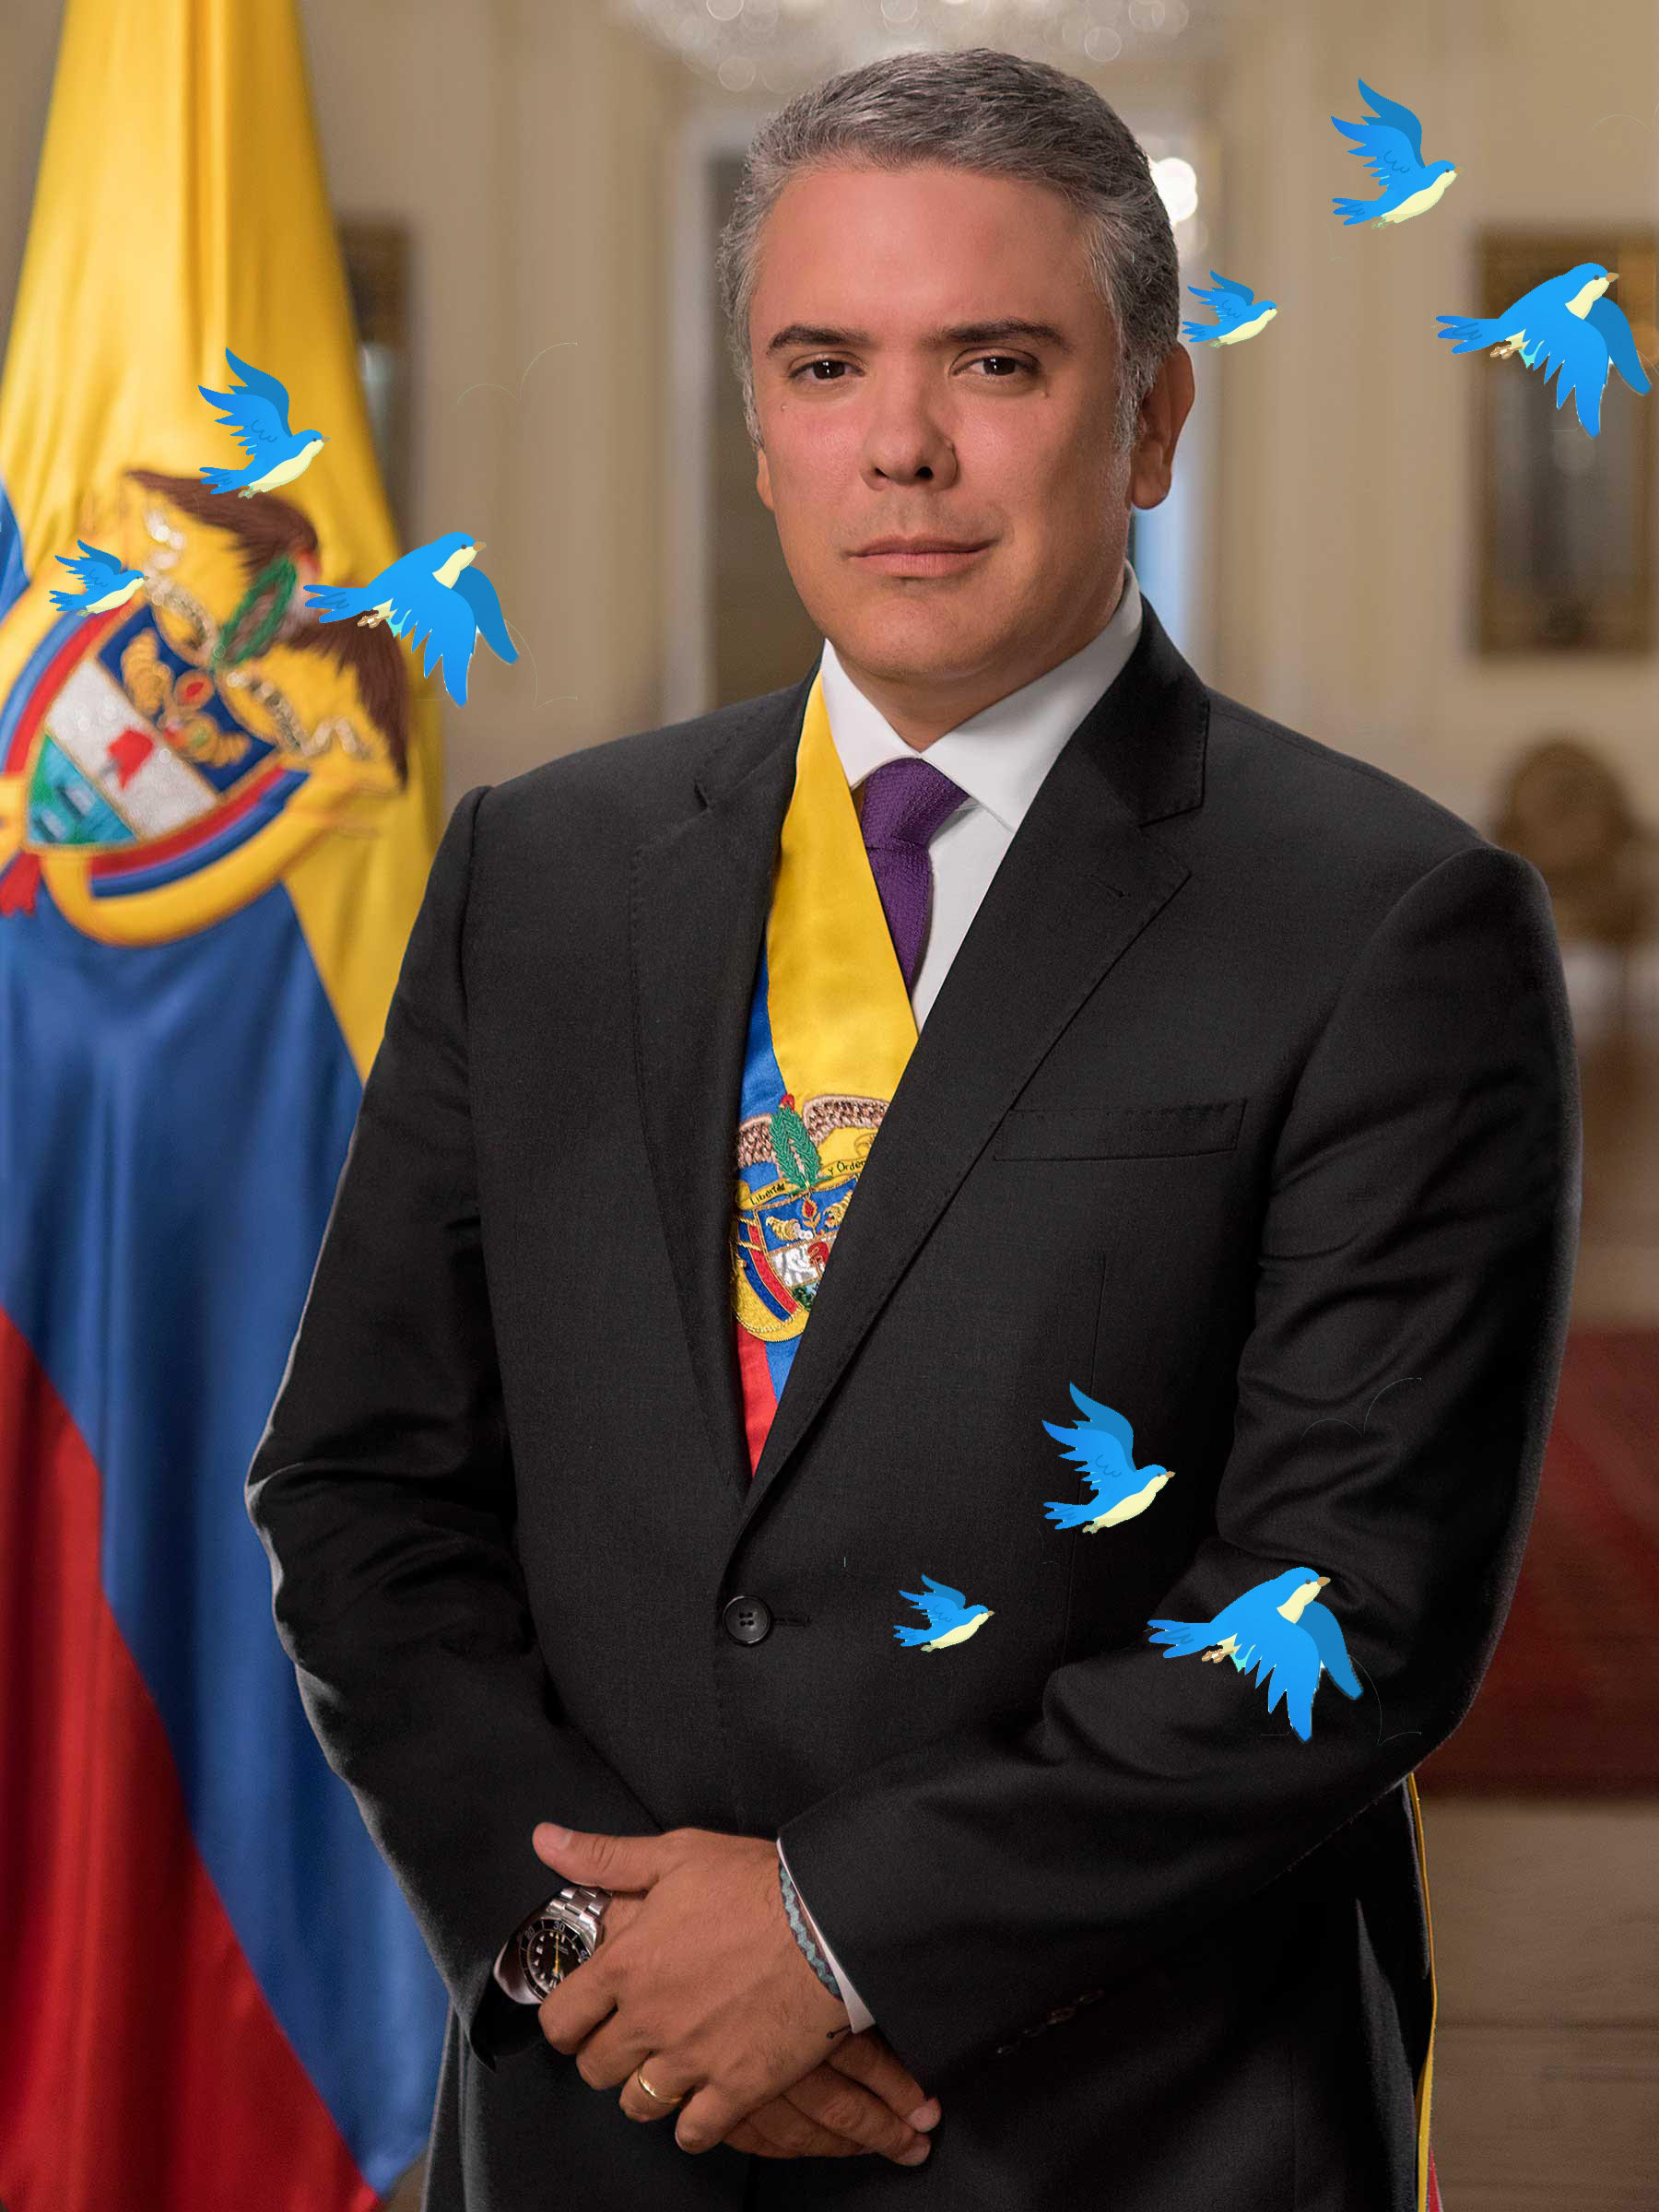 Duque y pajaritos